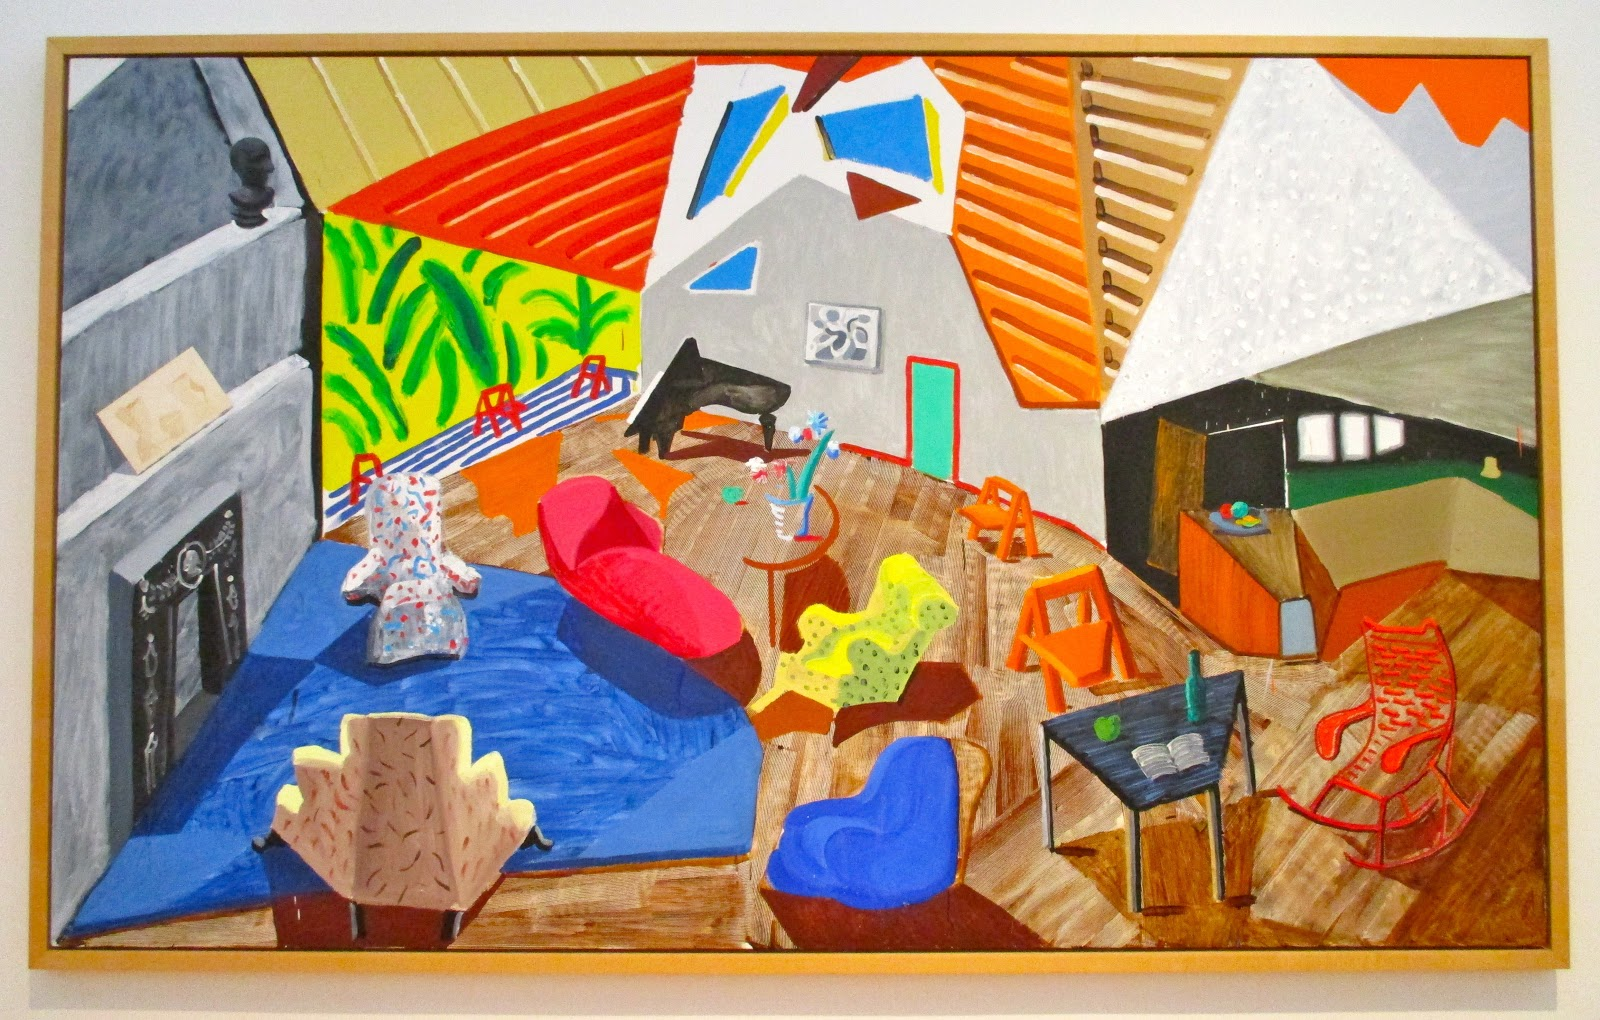 davidHockney_room.jpg